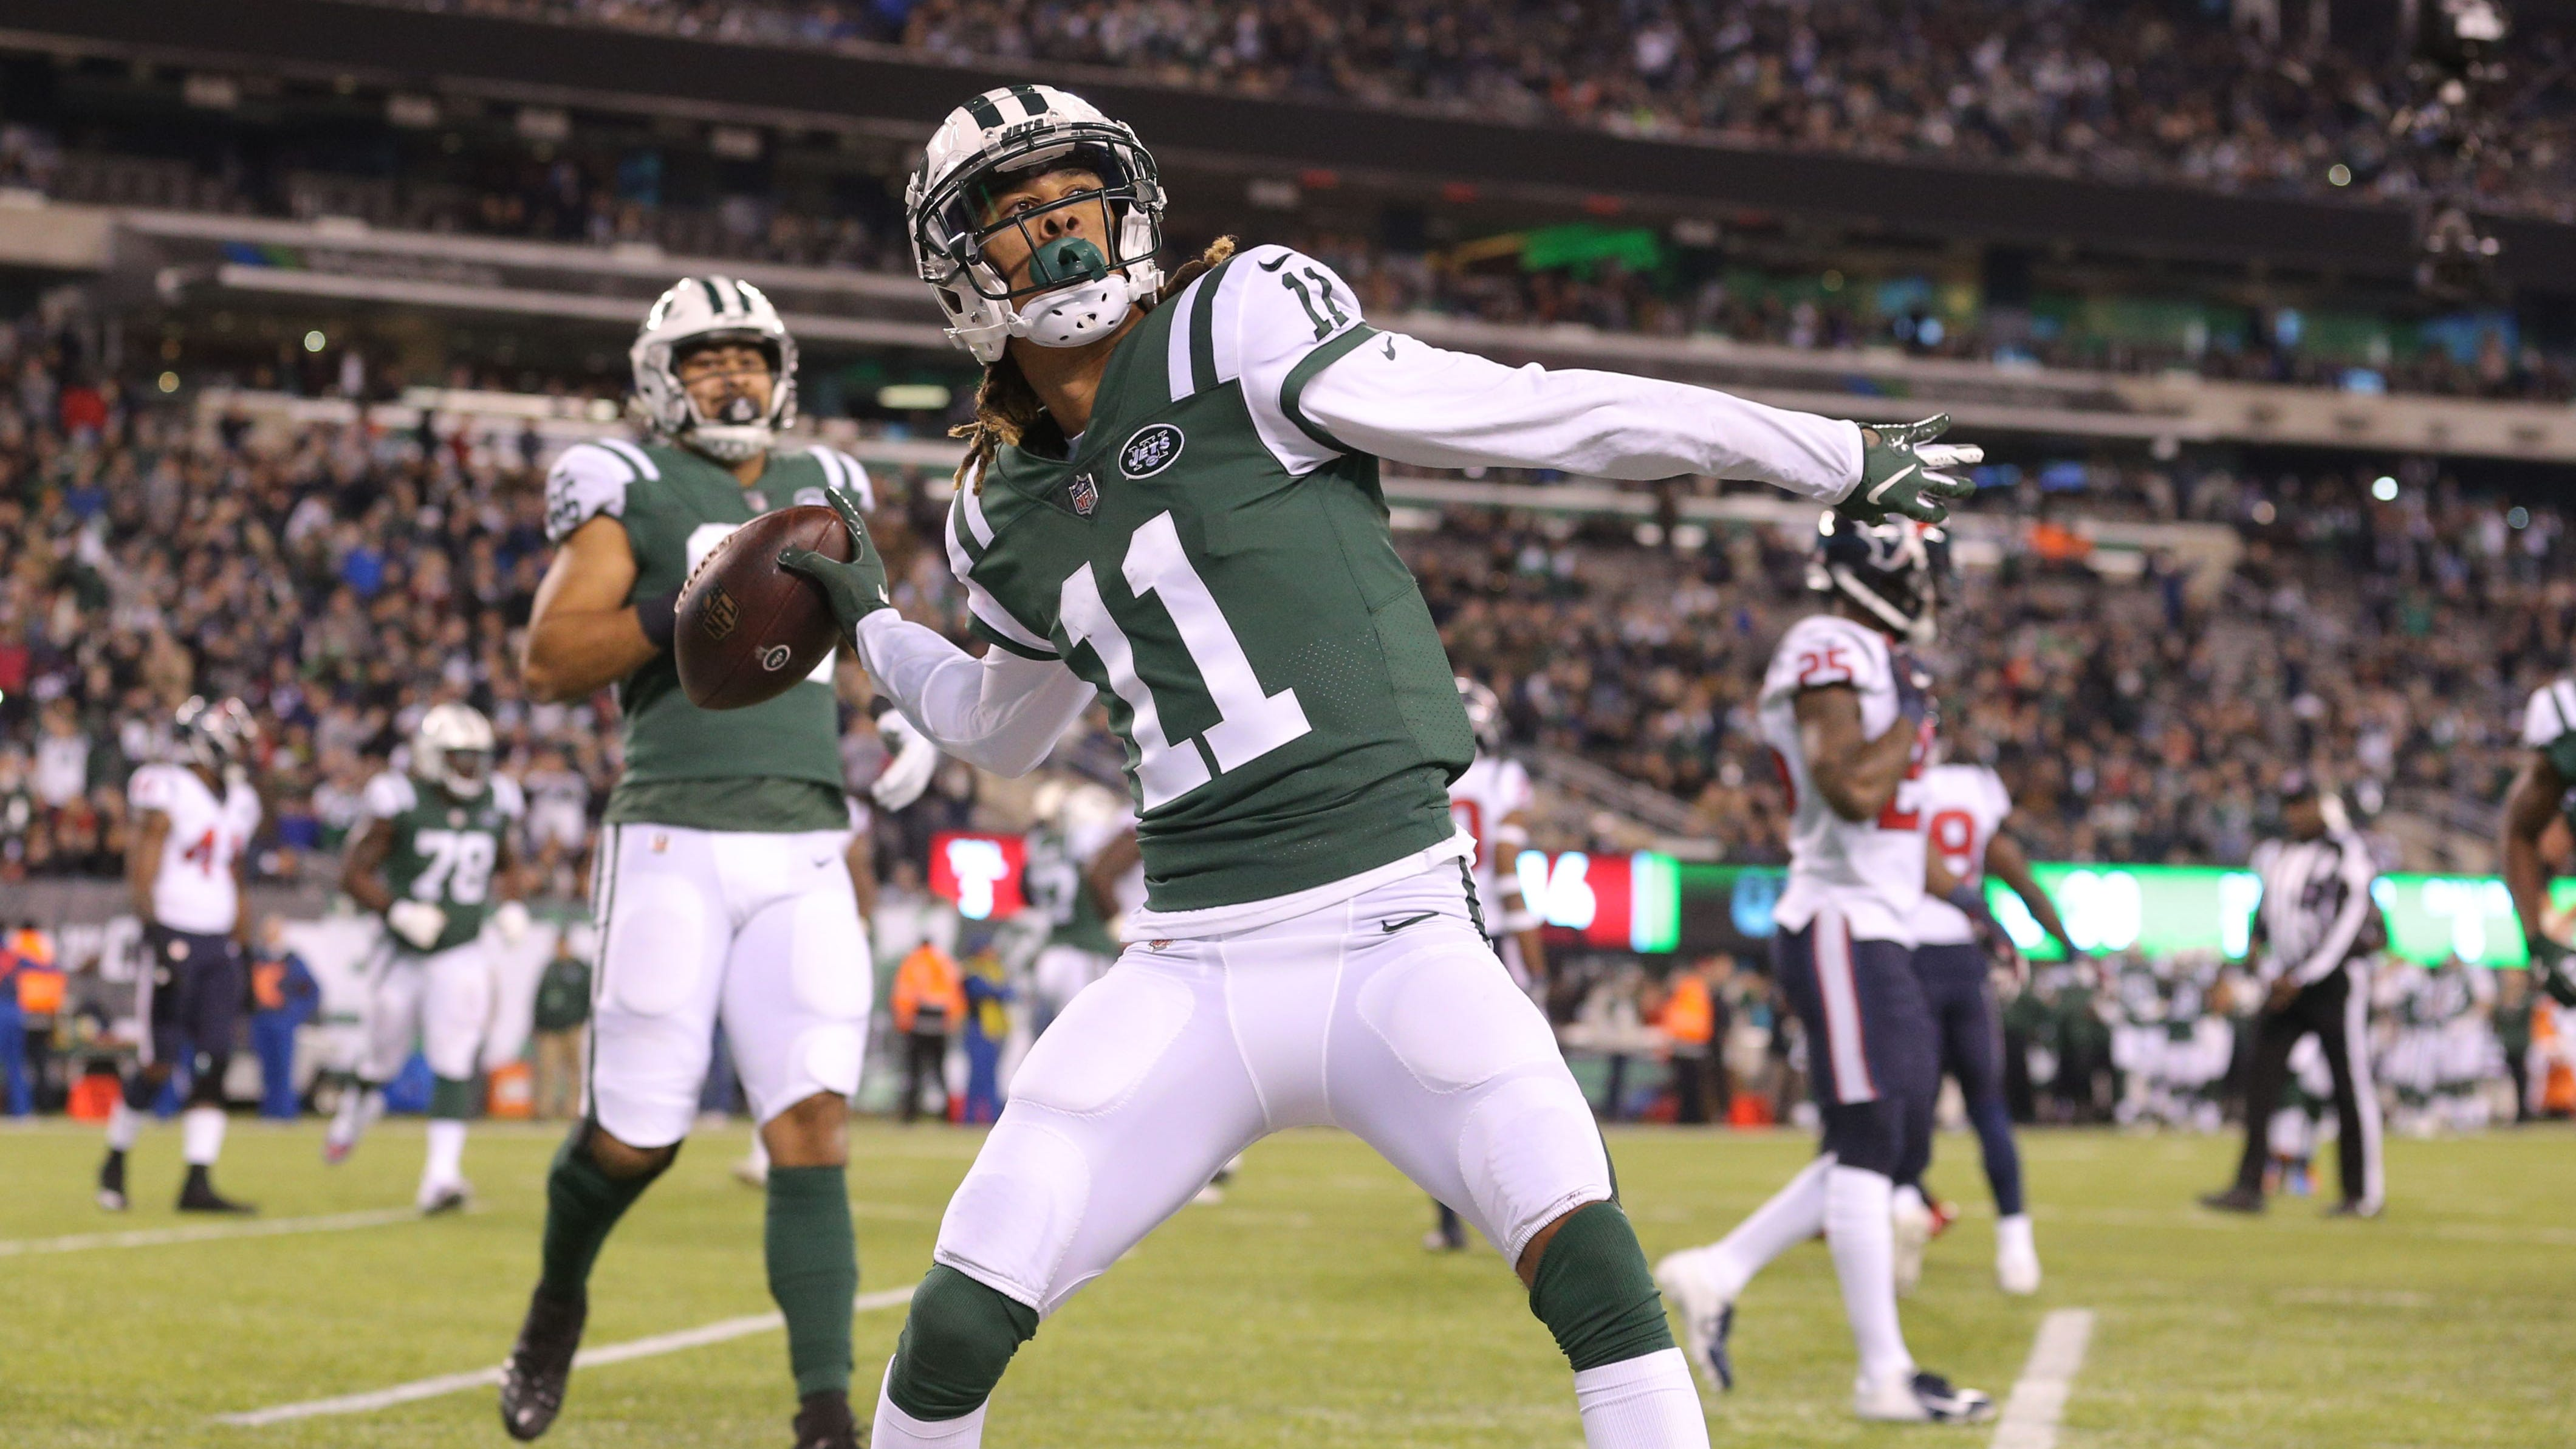 3b4d8975-bf0b-45dc-acd6-c3f6f7ce5a3f-usp_nfl__houston_texans_at_new_york_jets_3